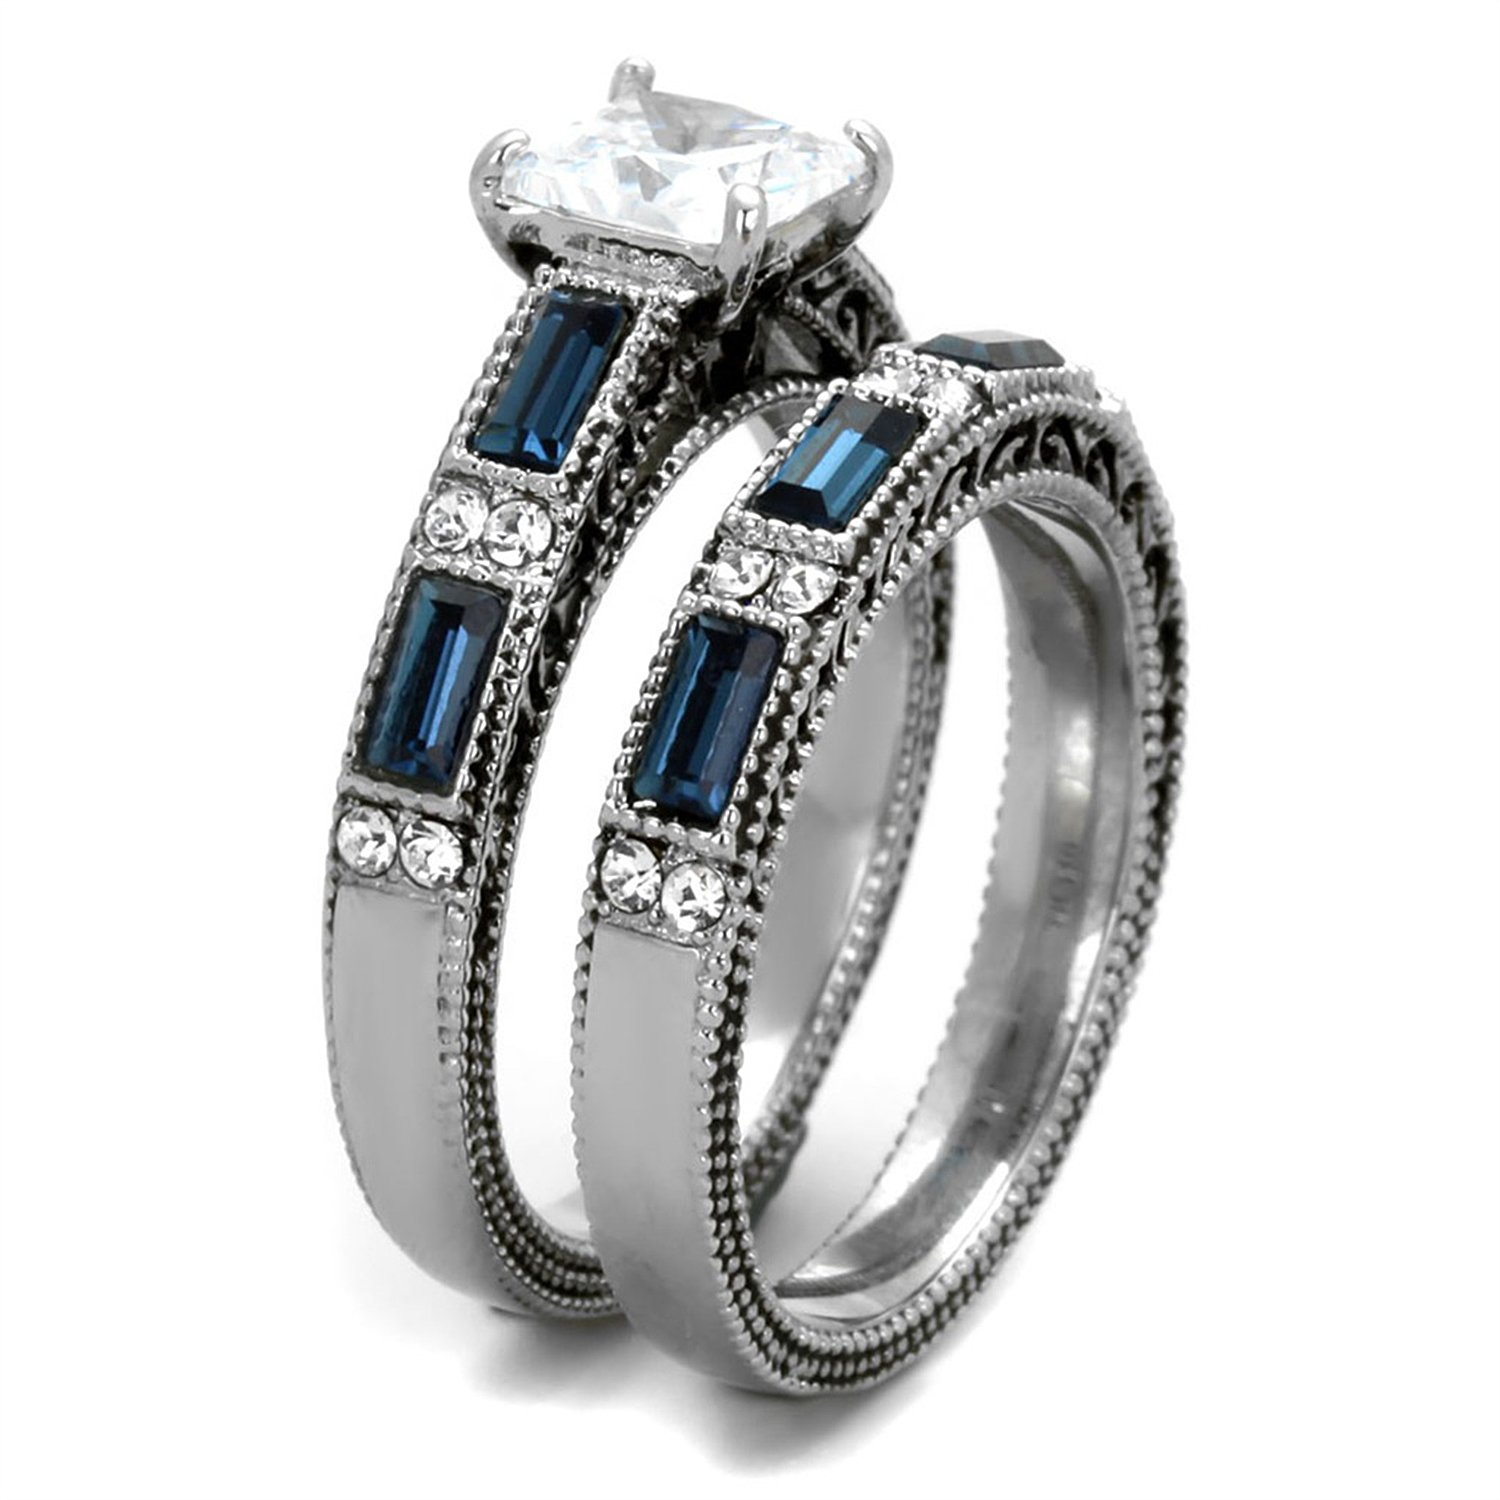 Amazon His Hers Wedding Ring Sets Womens Stainless Steel Vintage Set Mens Titanimum Band Size 05 09 Jewelry